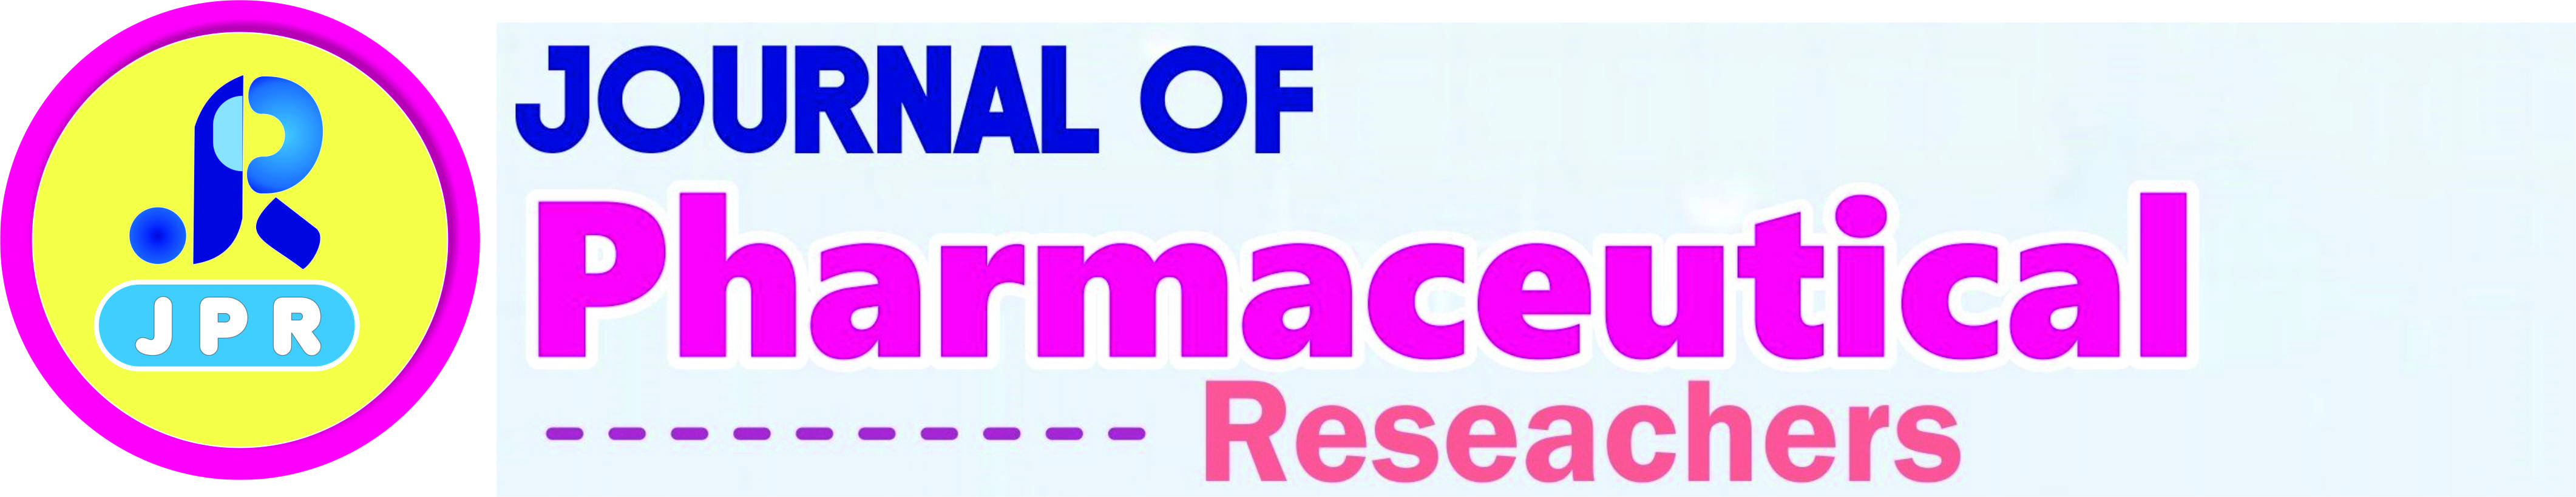 Journal of Pharmaceutical Researchers